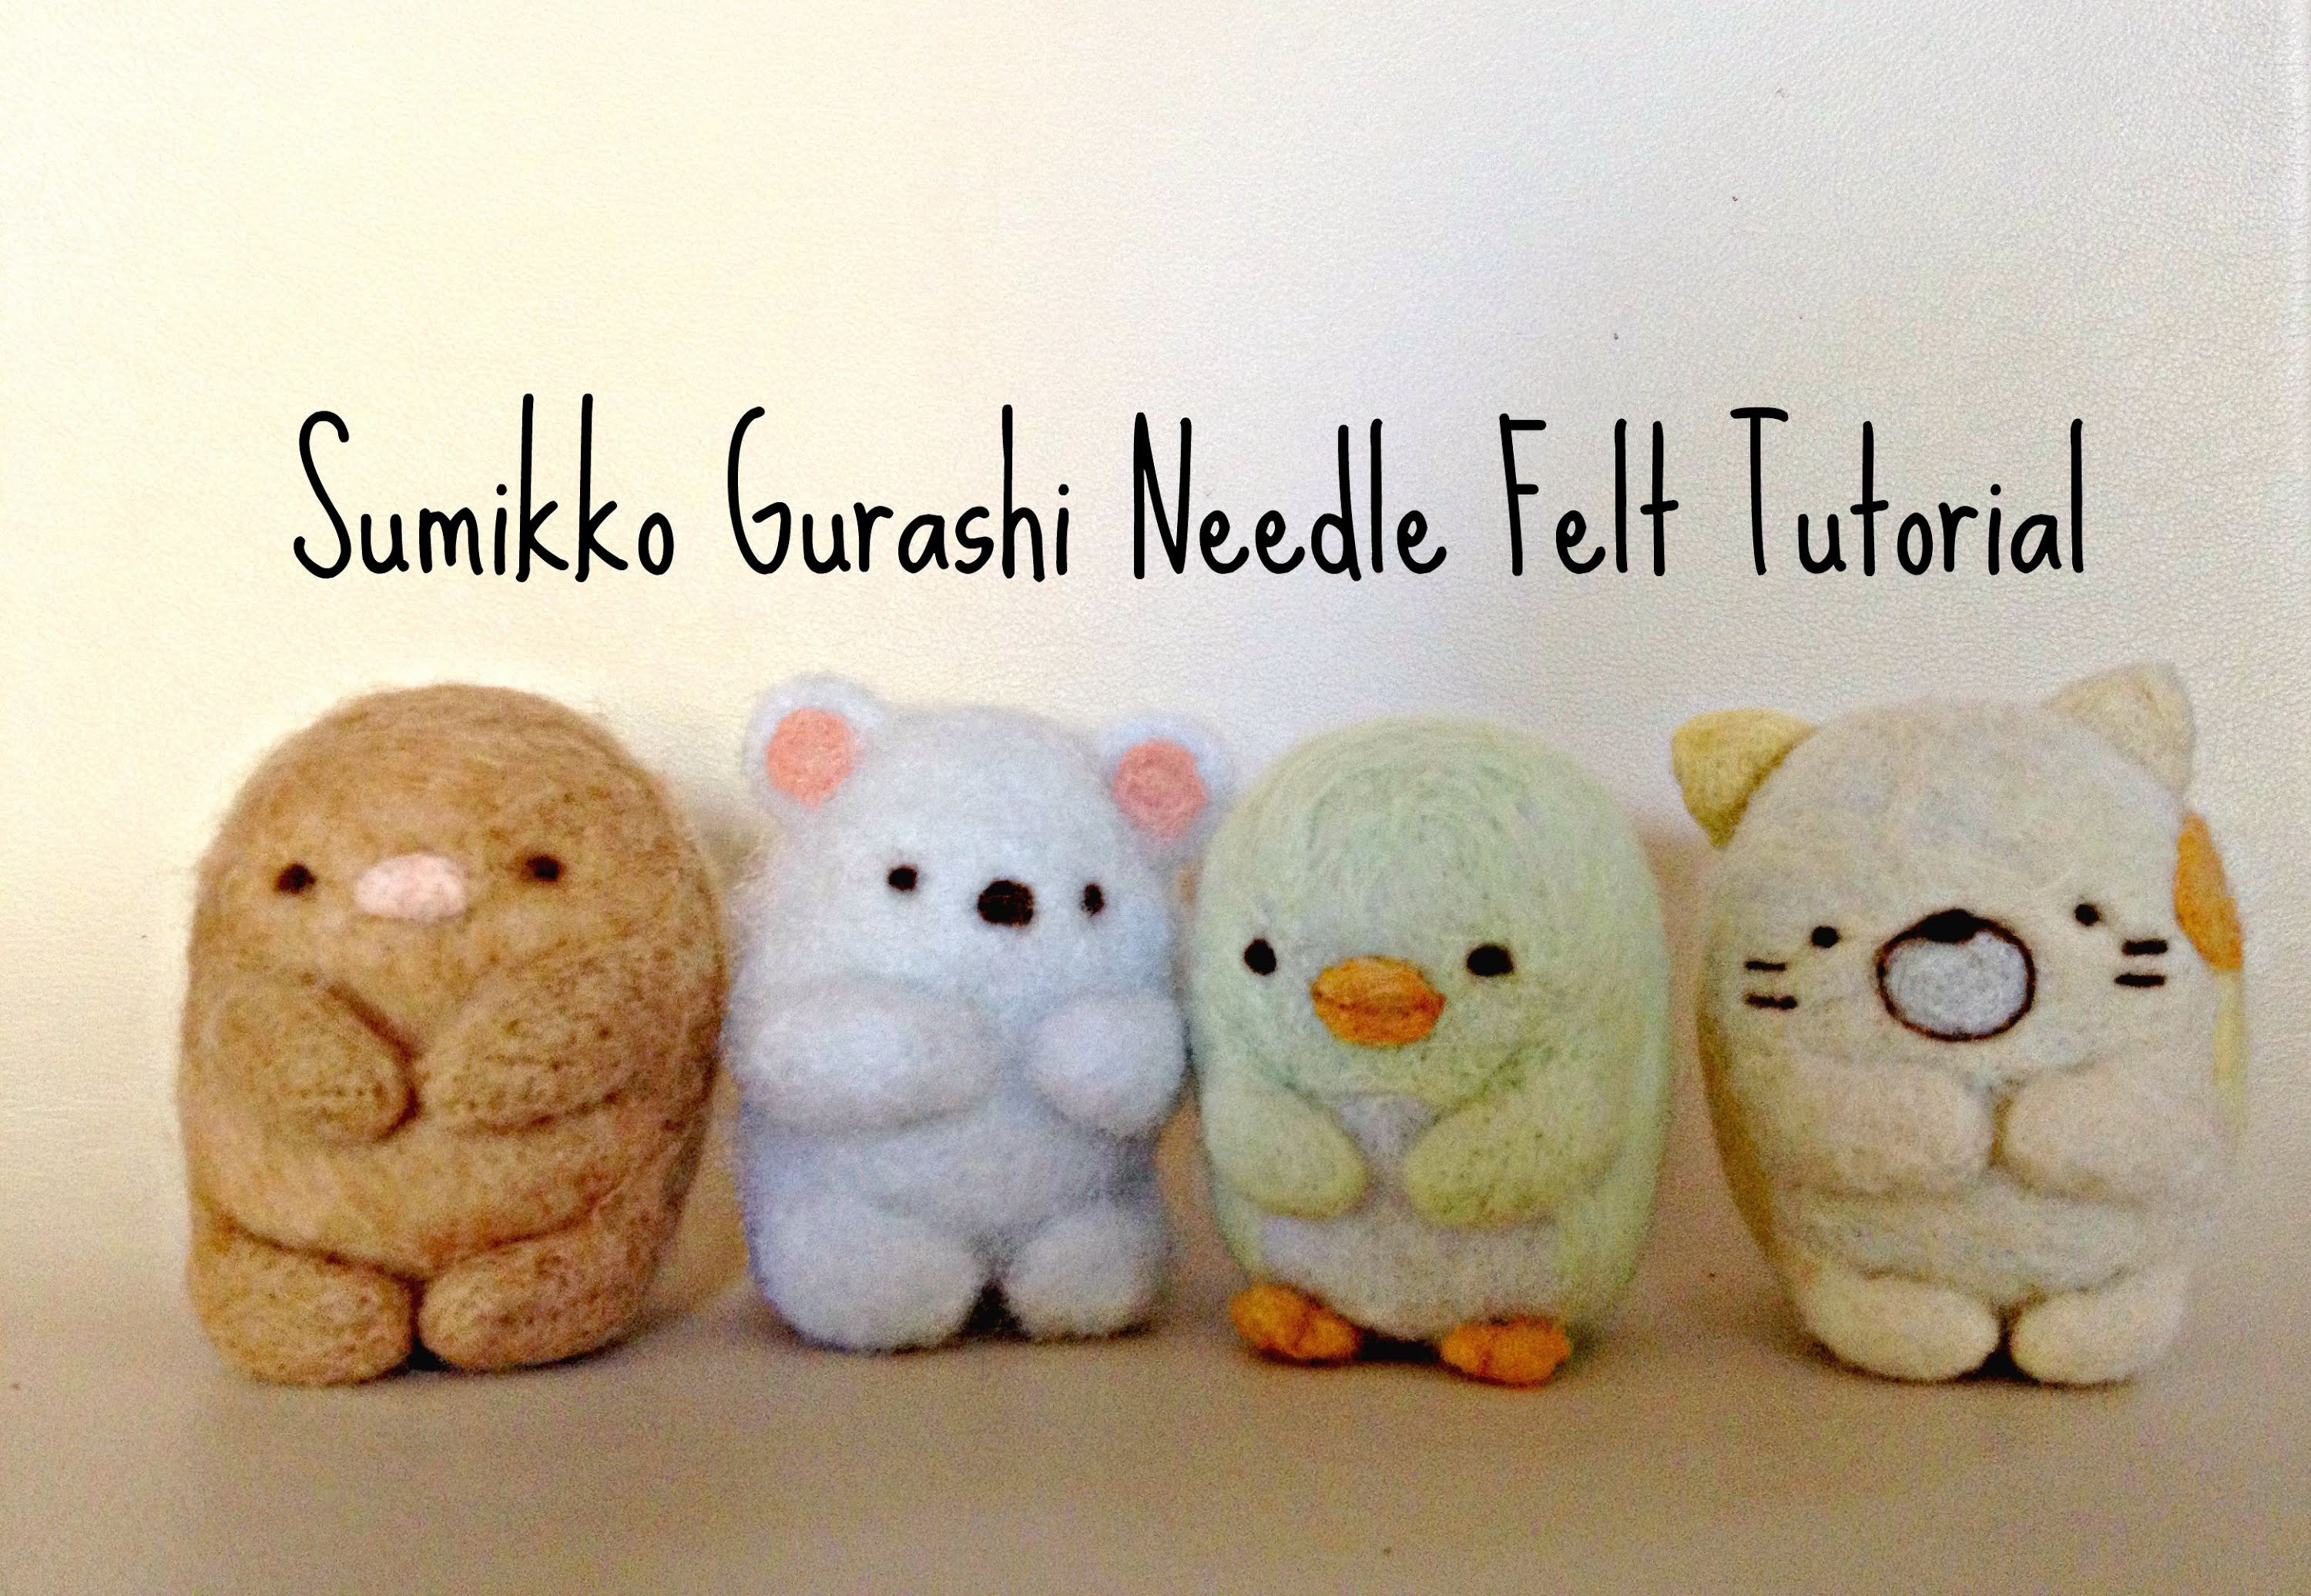 Sweetorials Audition: Needle Felt Sumikko Gurashi Tutorial